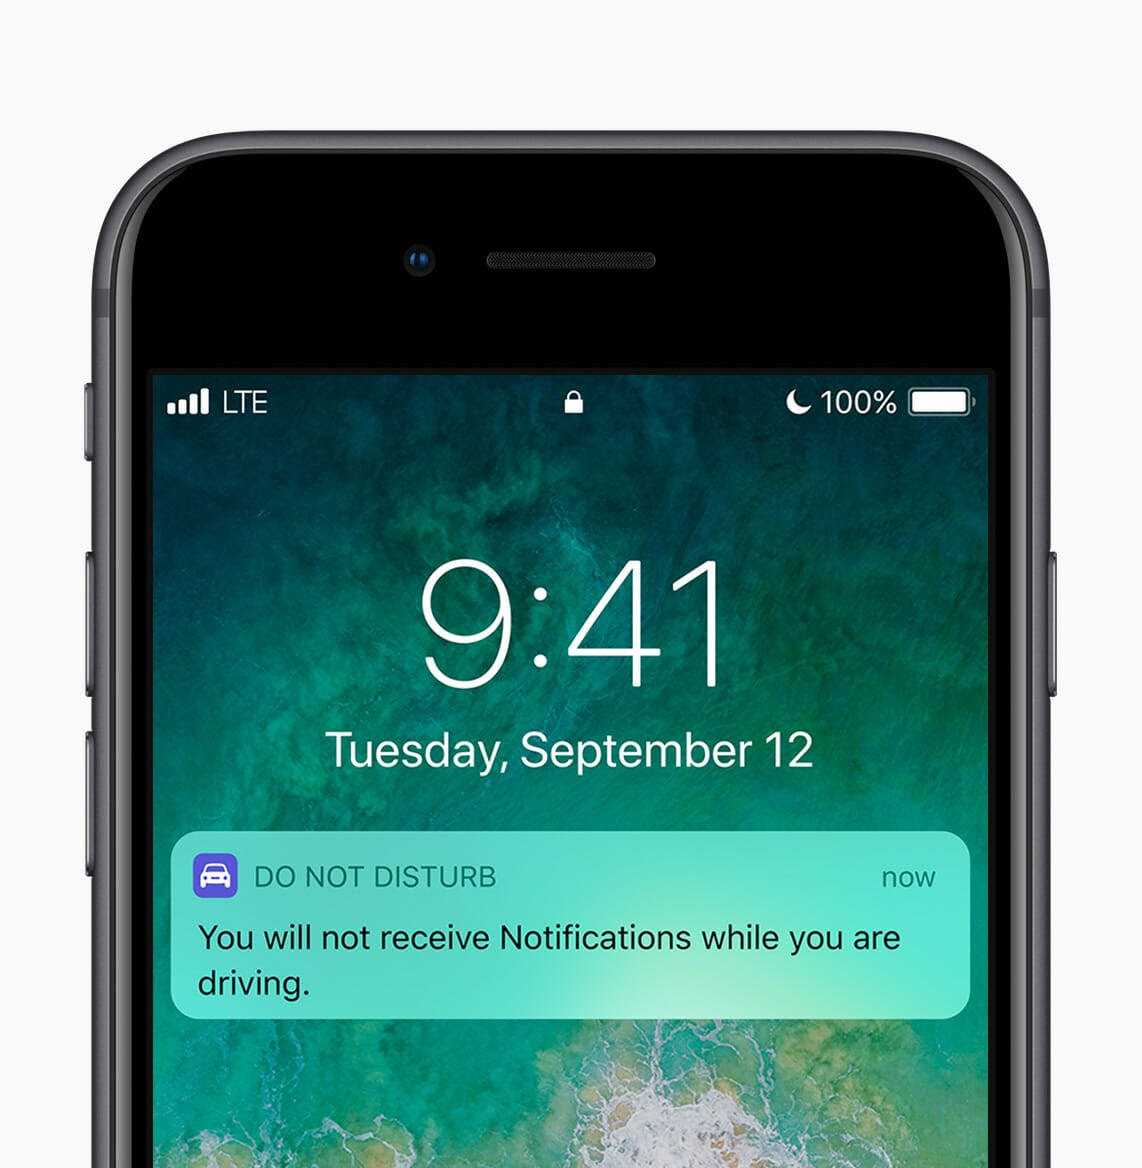 ios 11 features : Do Not Disturb while driving screen grab